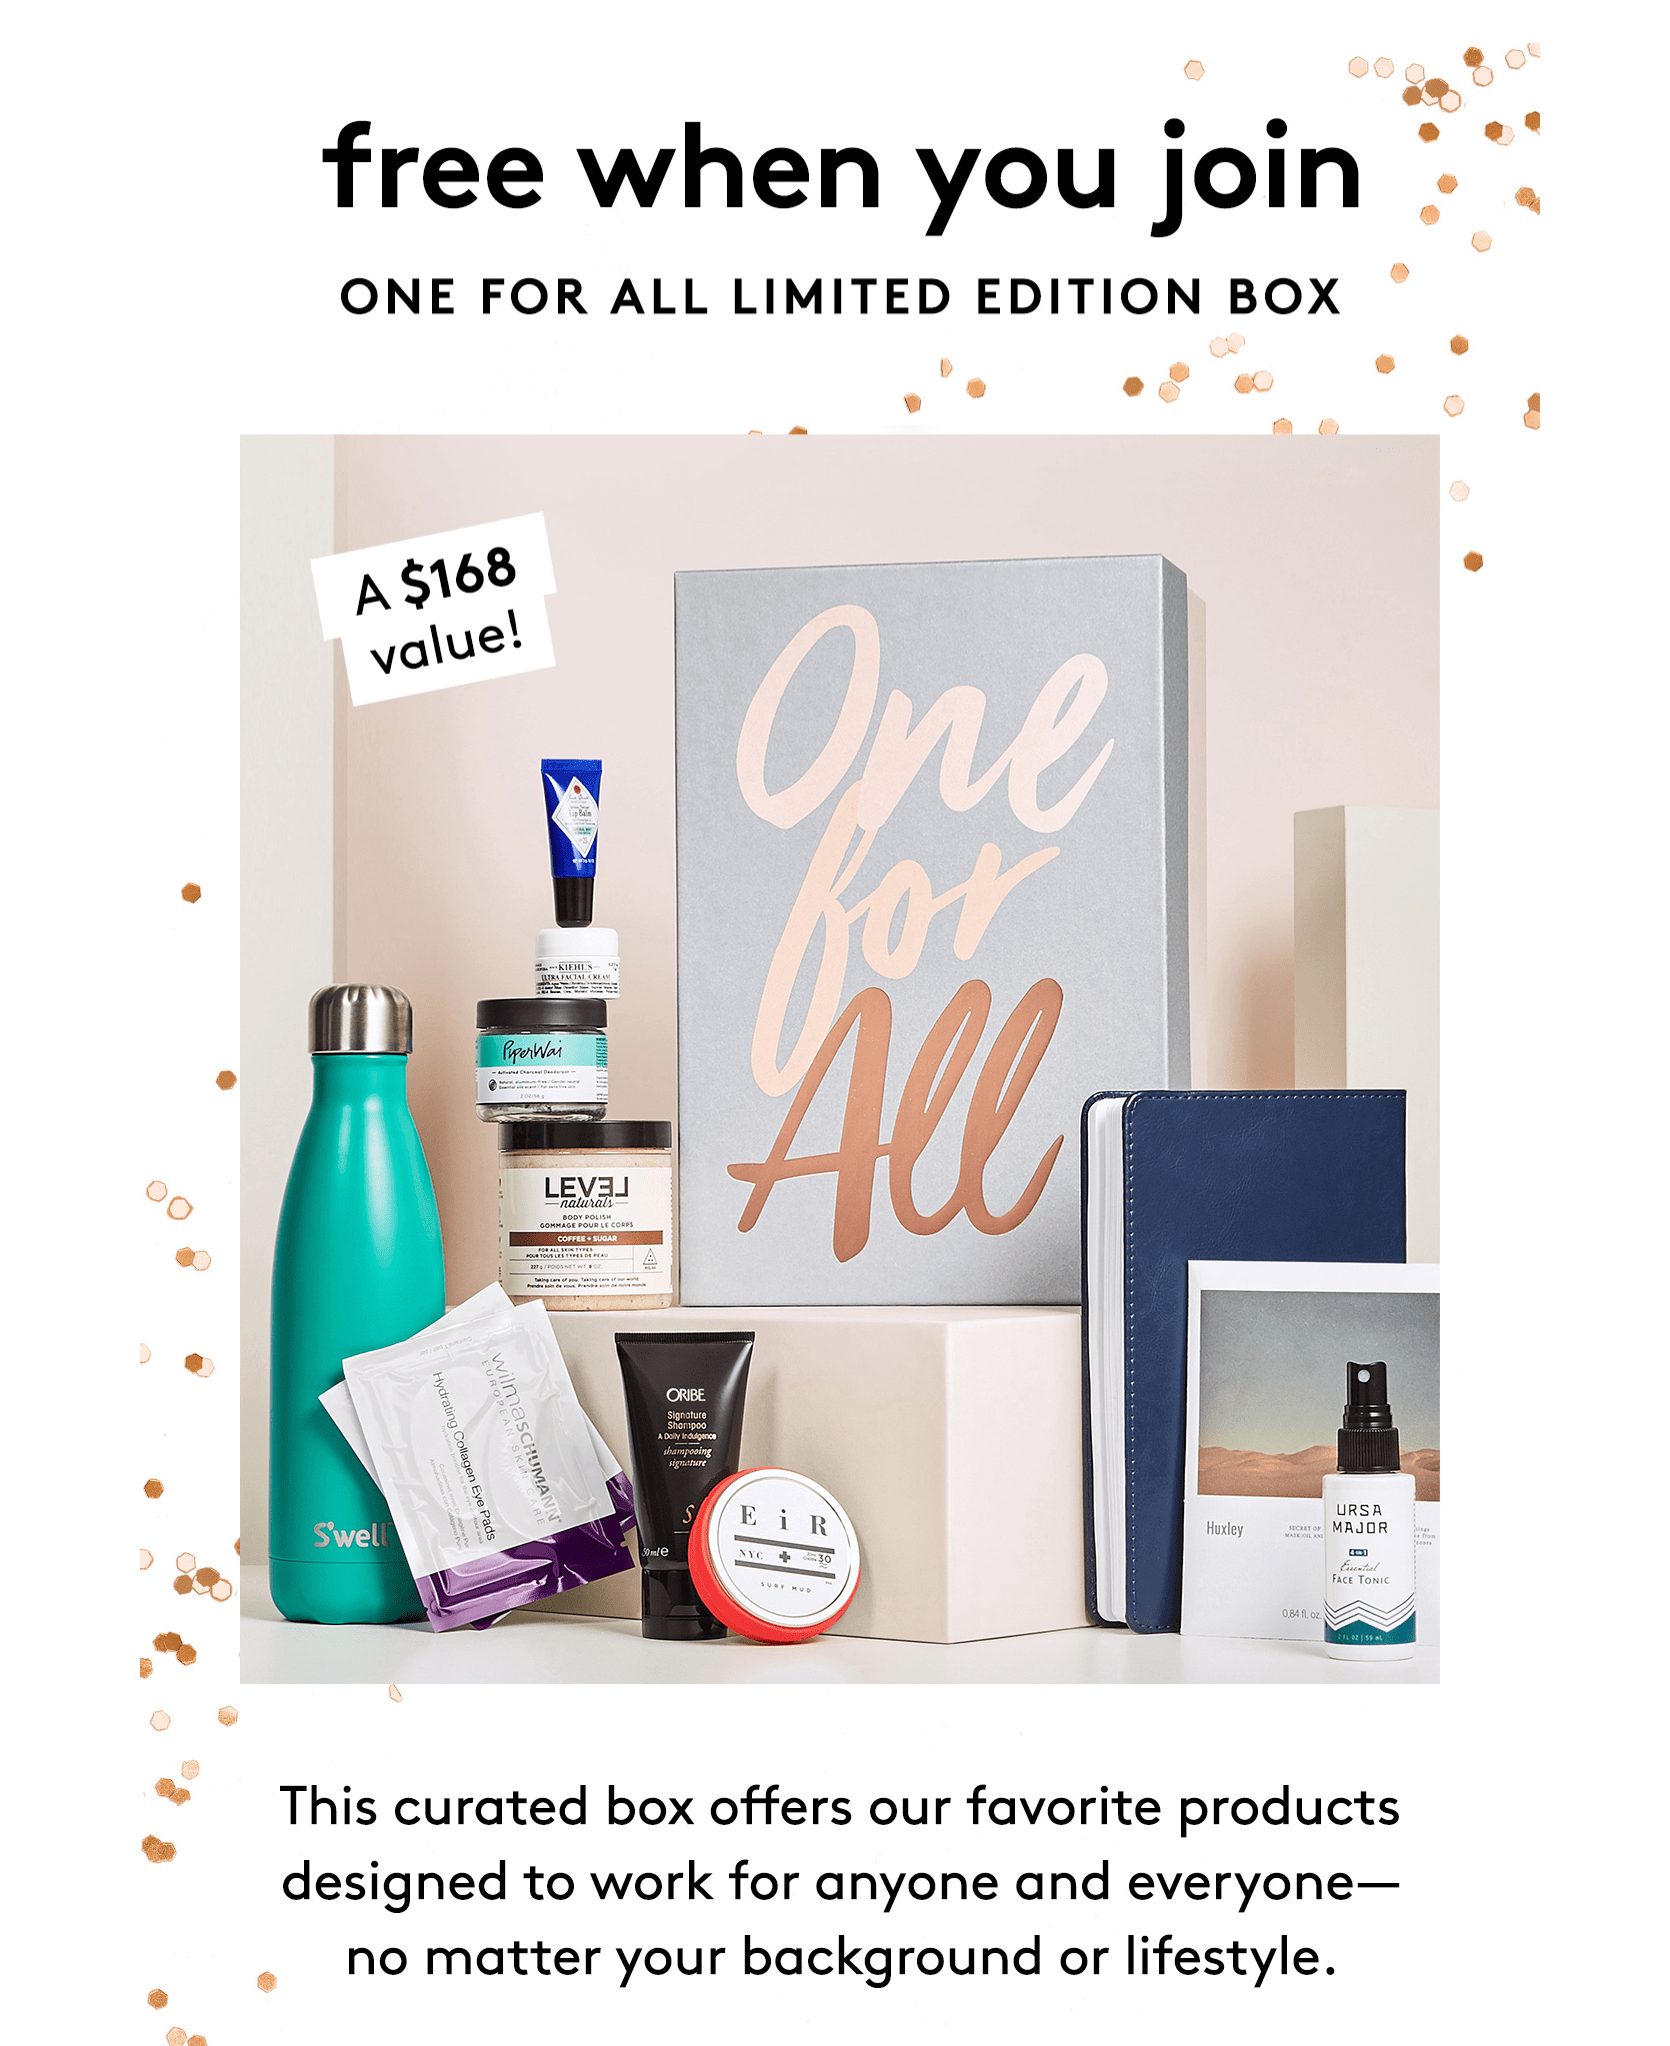 Birchbox Coupon: FREE Limited Edition One For All Box with 12 Month Subscription!